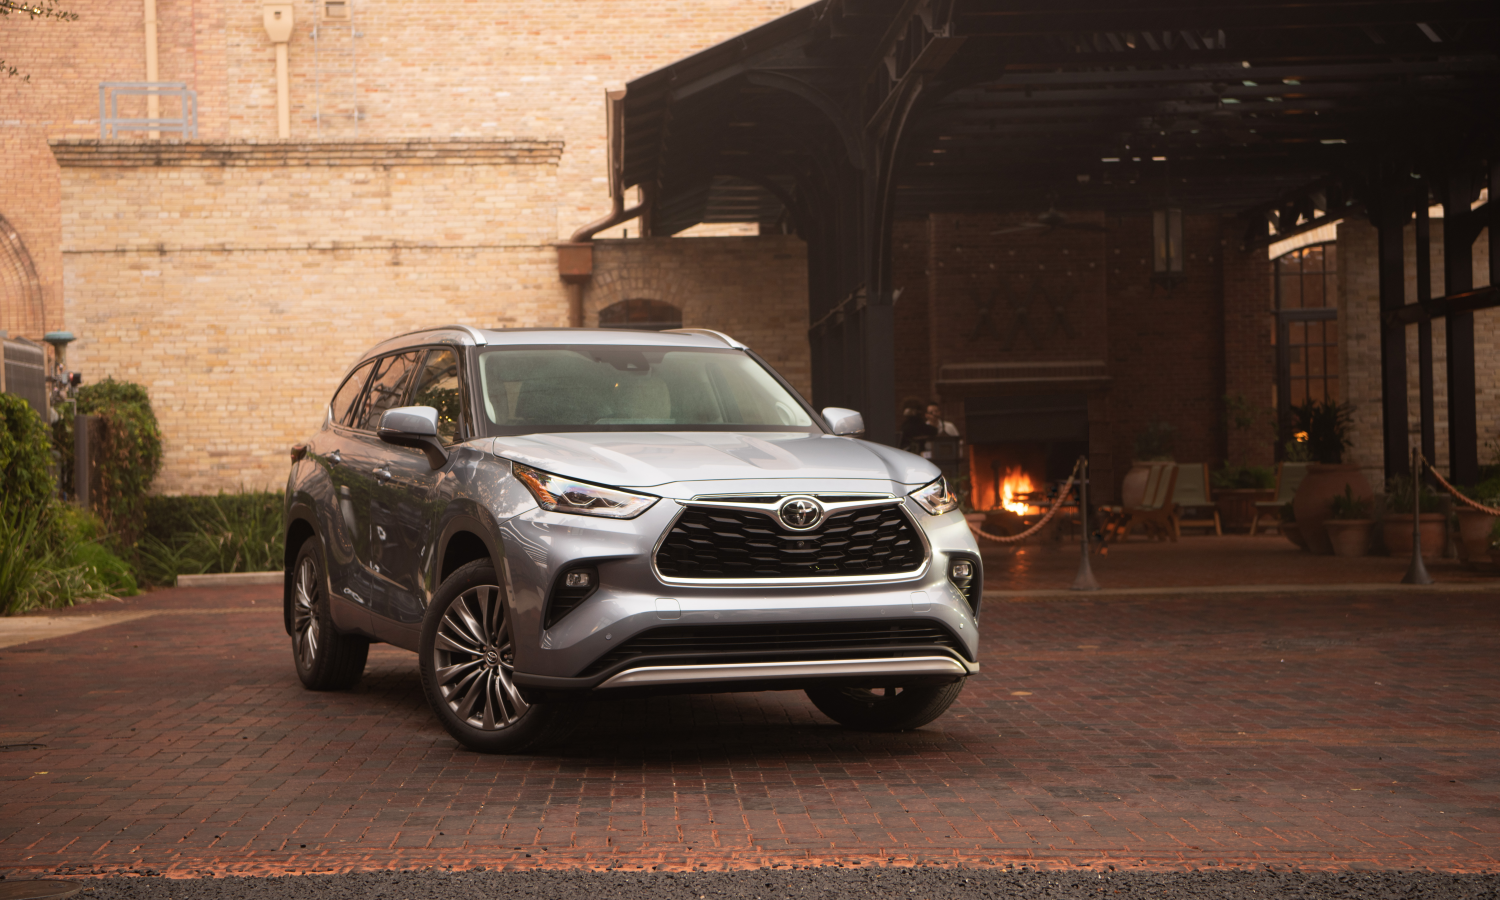 Toyota's Fourth Generation 2020 Highlander Redesigned from the Ground Up